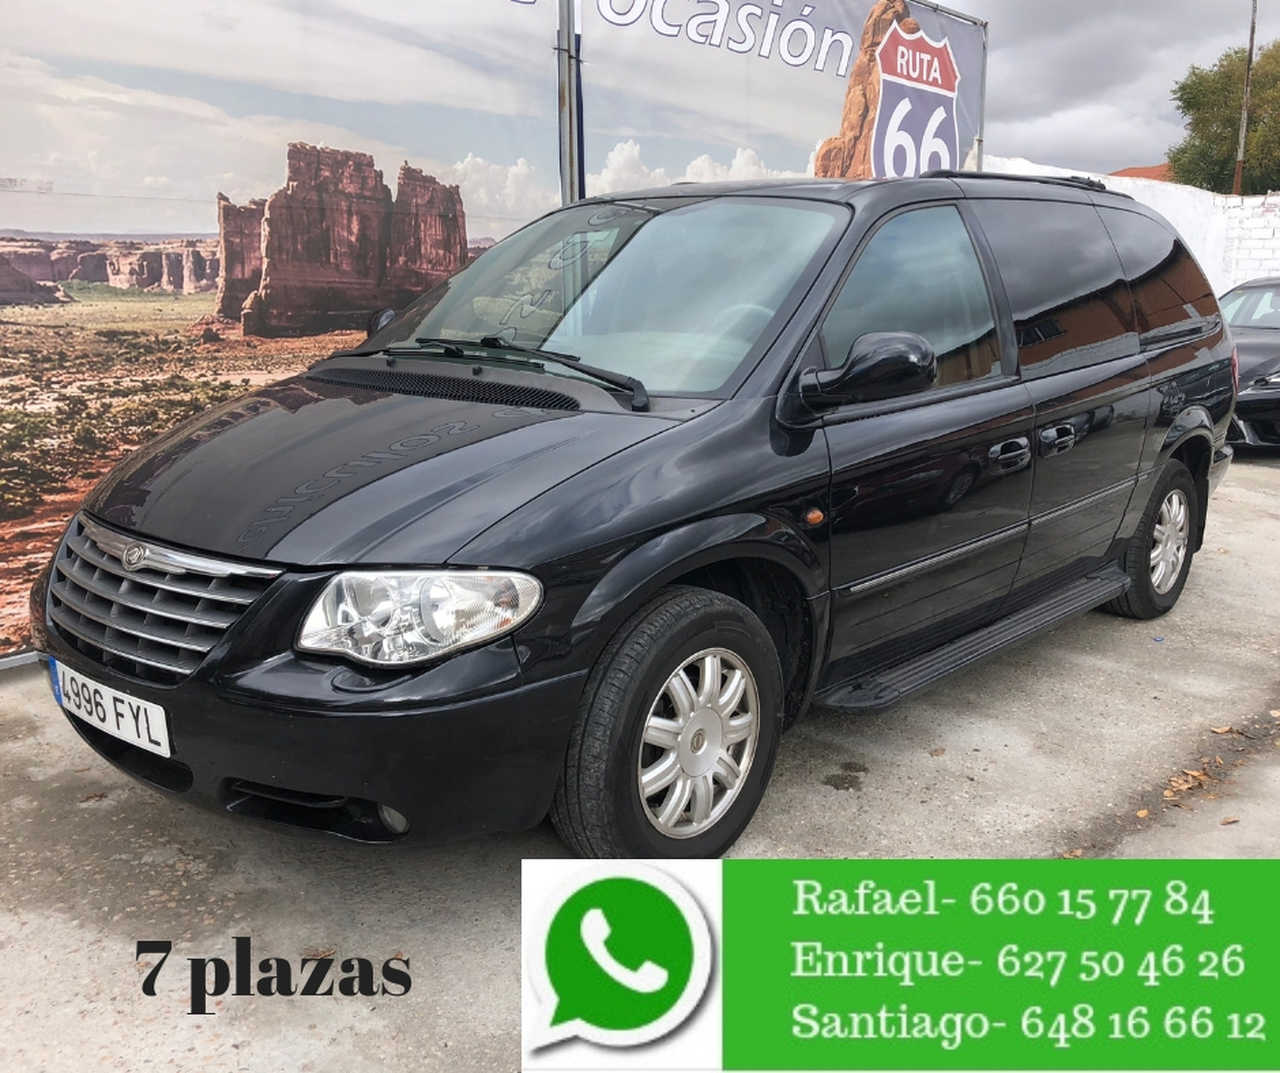 Chrysler Grand voyager Limited 2.8 CRD Auto 5p.   - Foto 1